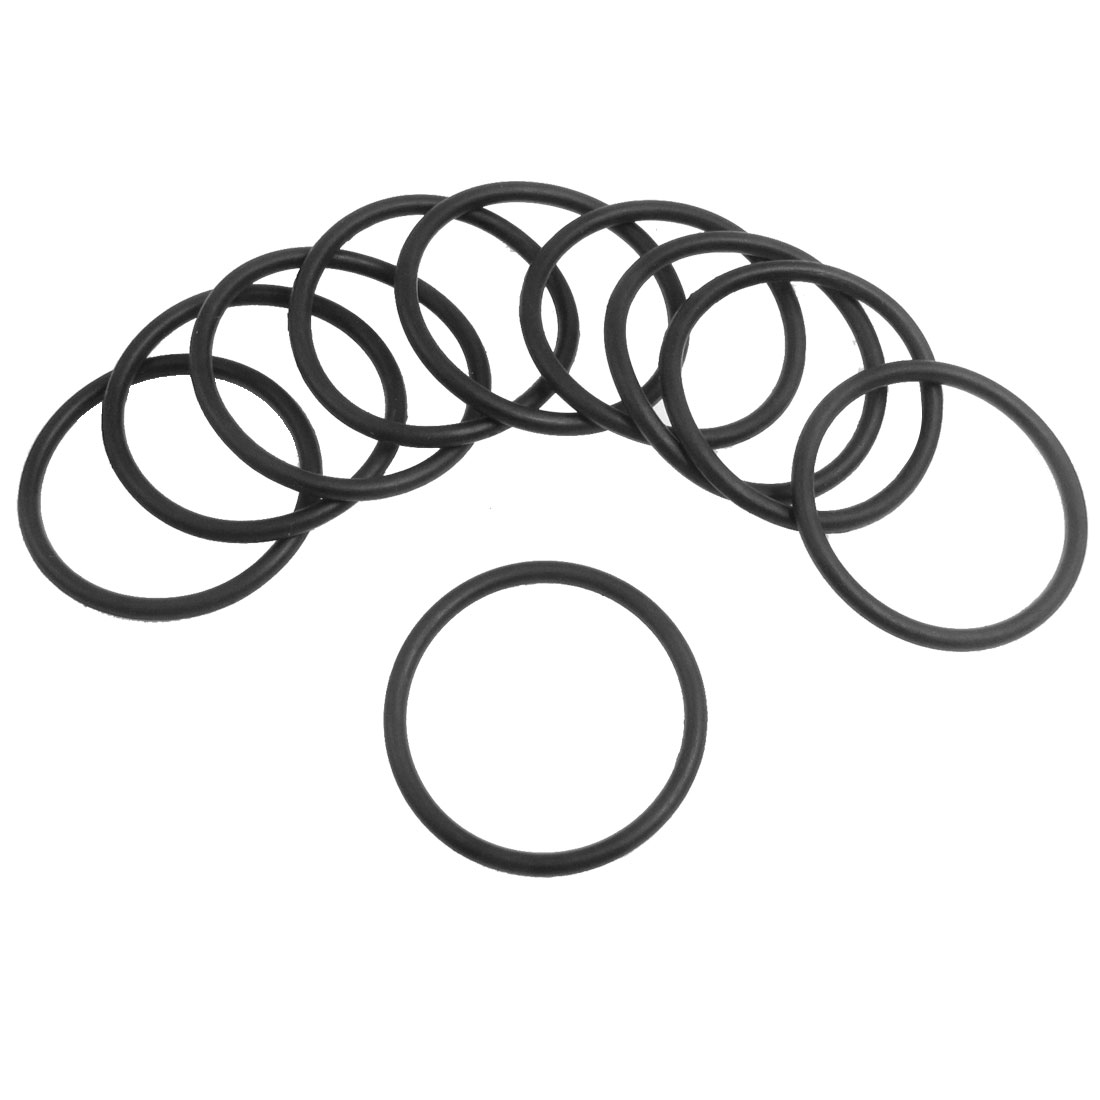 10 Pcs 30mm x 2.65mm Black Silicone O Rings Oil Seals Gaskets